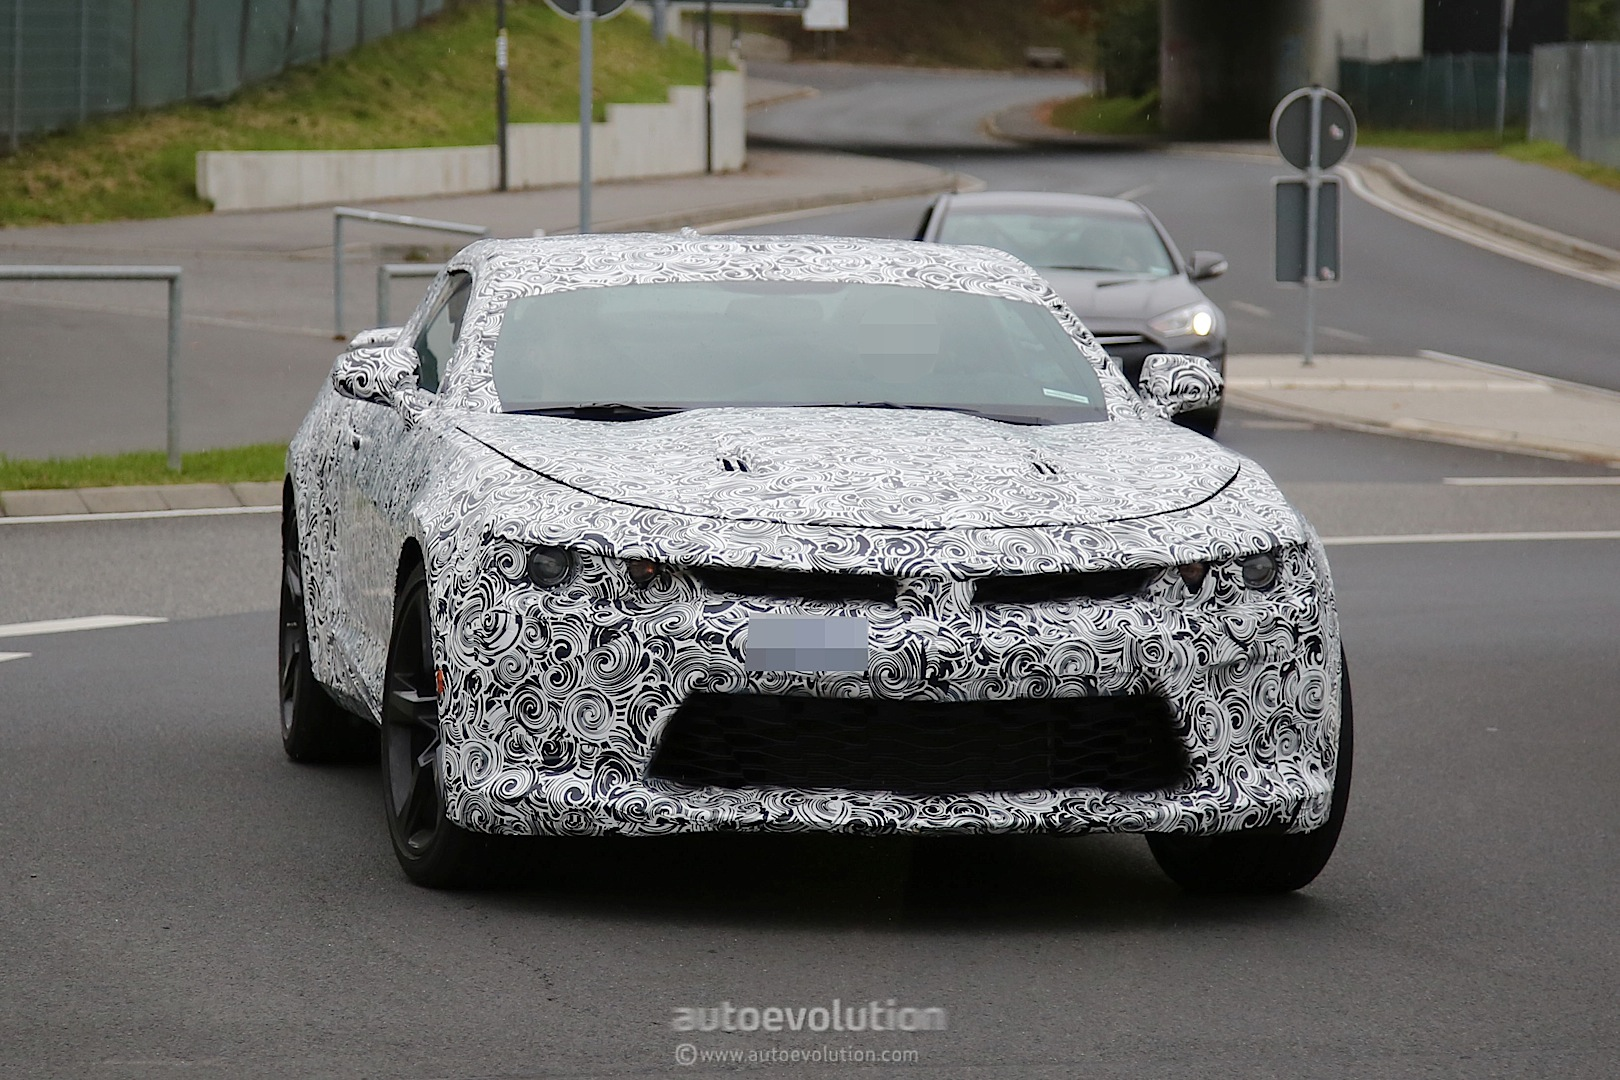 2016 Chevrolet Camaro Spied Near the Nurburgring, Looks Like Bumblebee